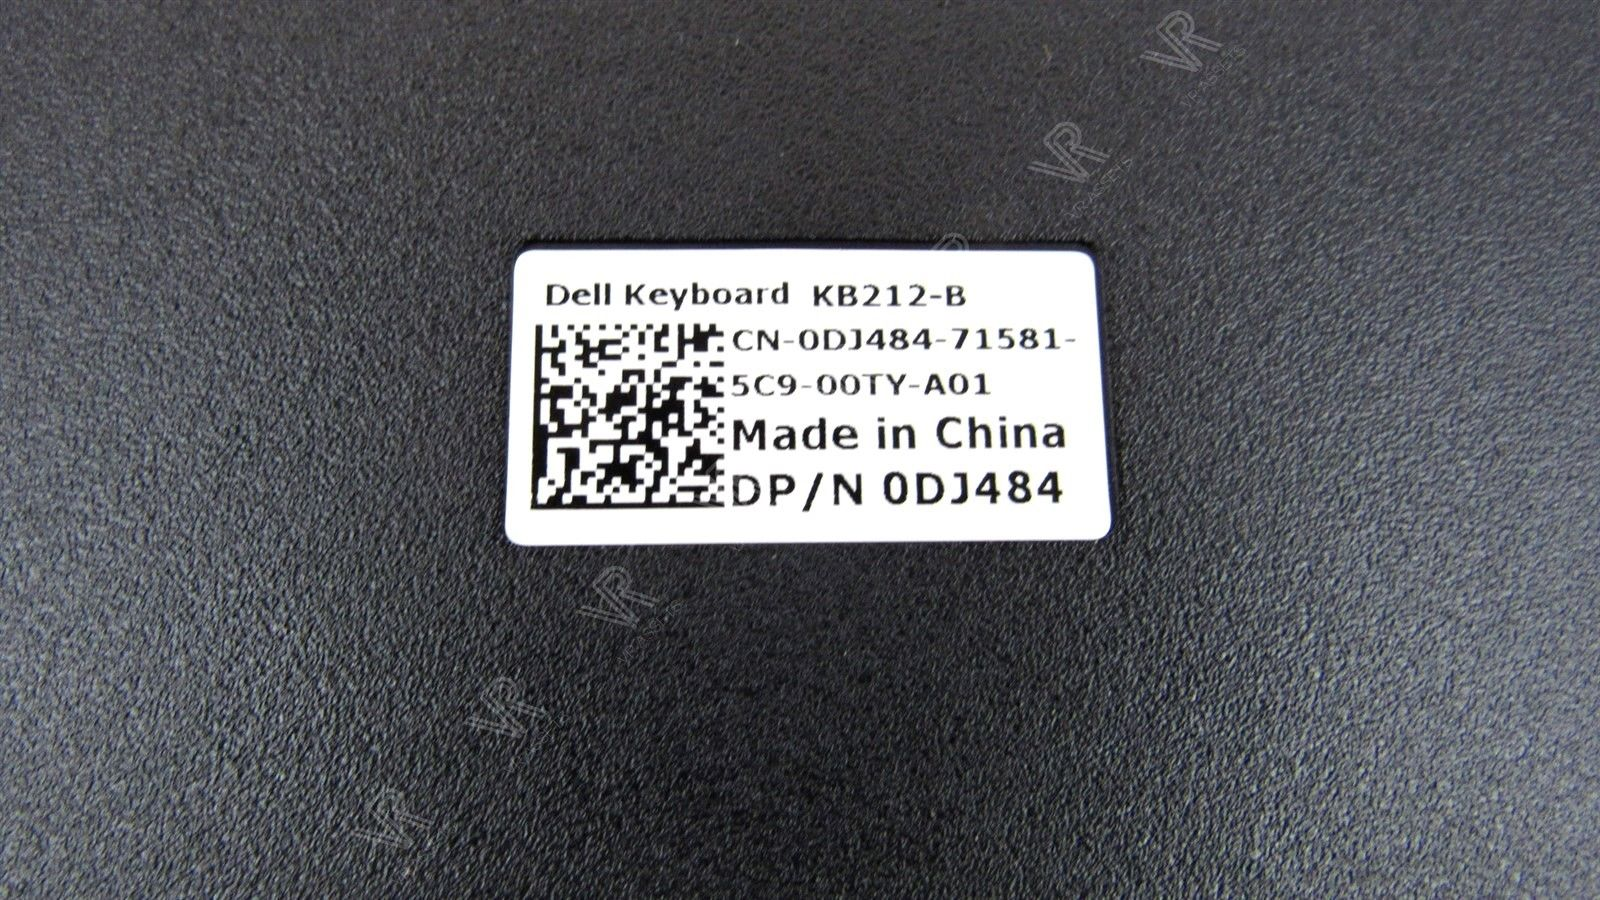 Genuine Dell KB212-B USB Canadian Multilingual Black Keyboard DJ484 0DJ484